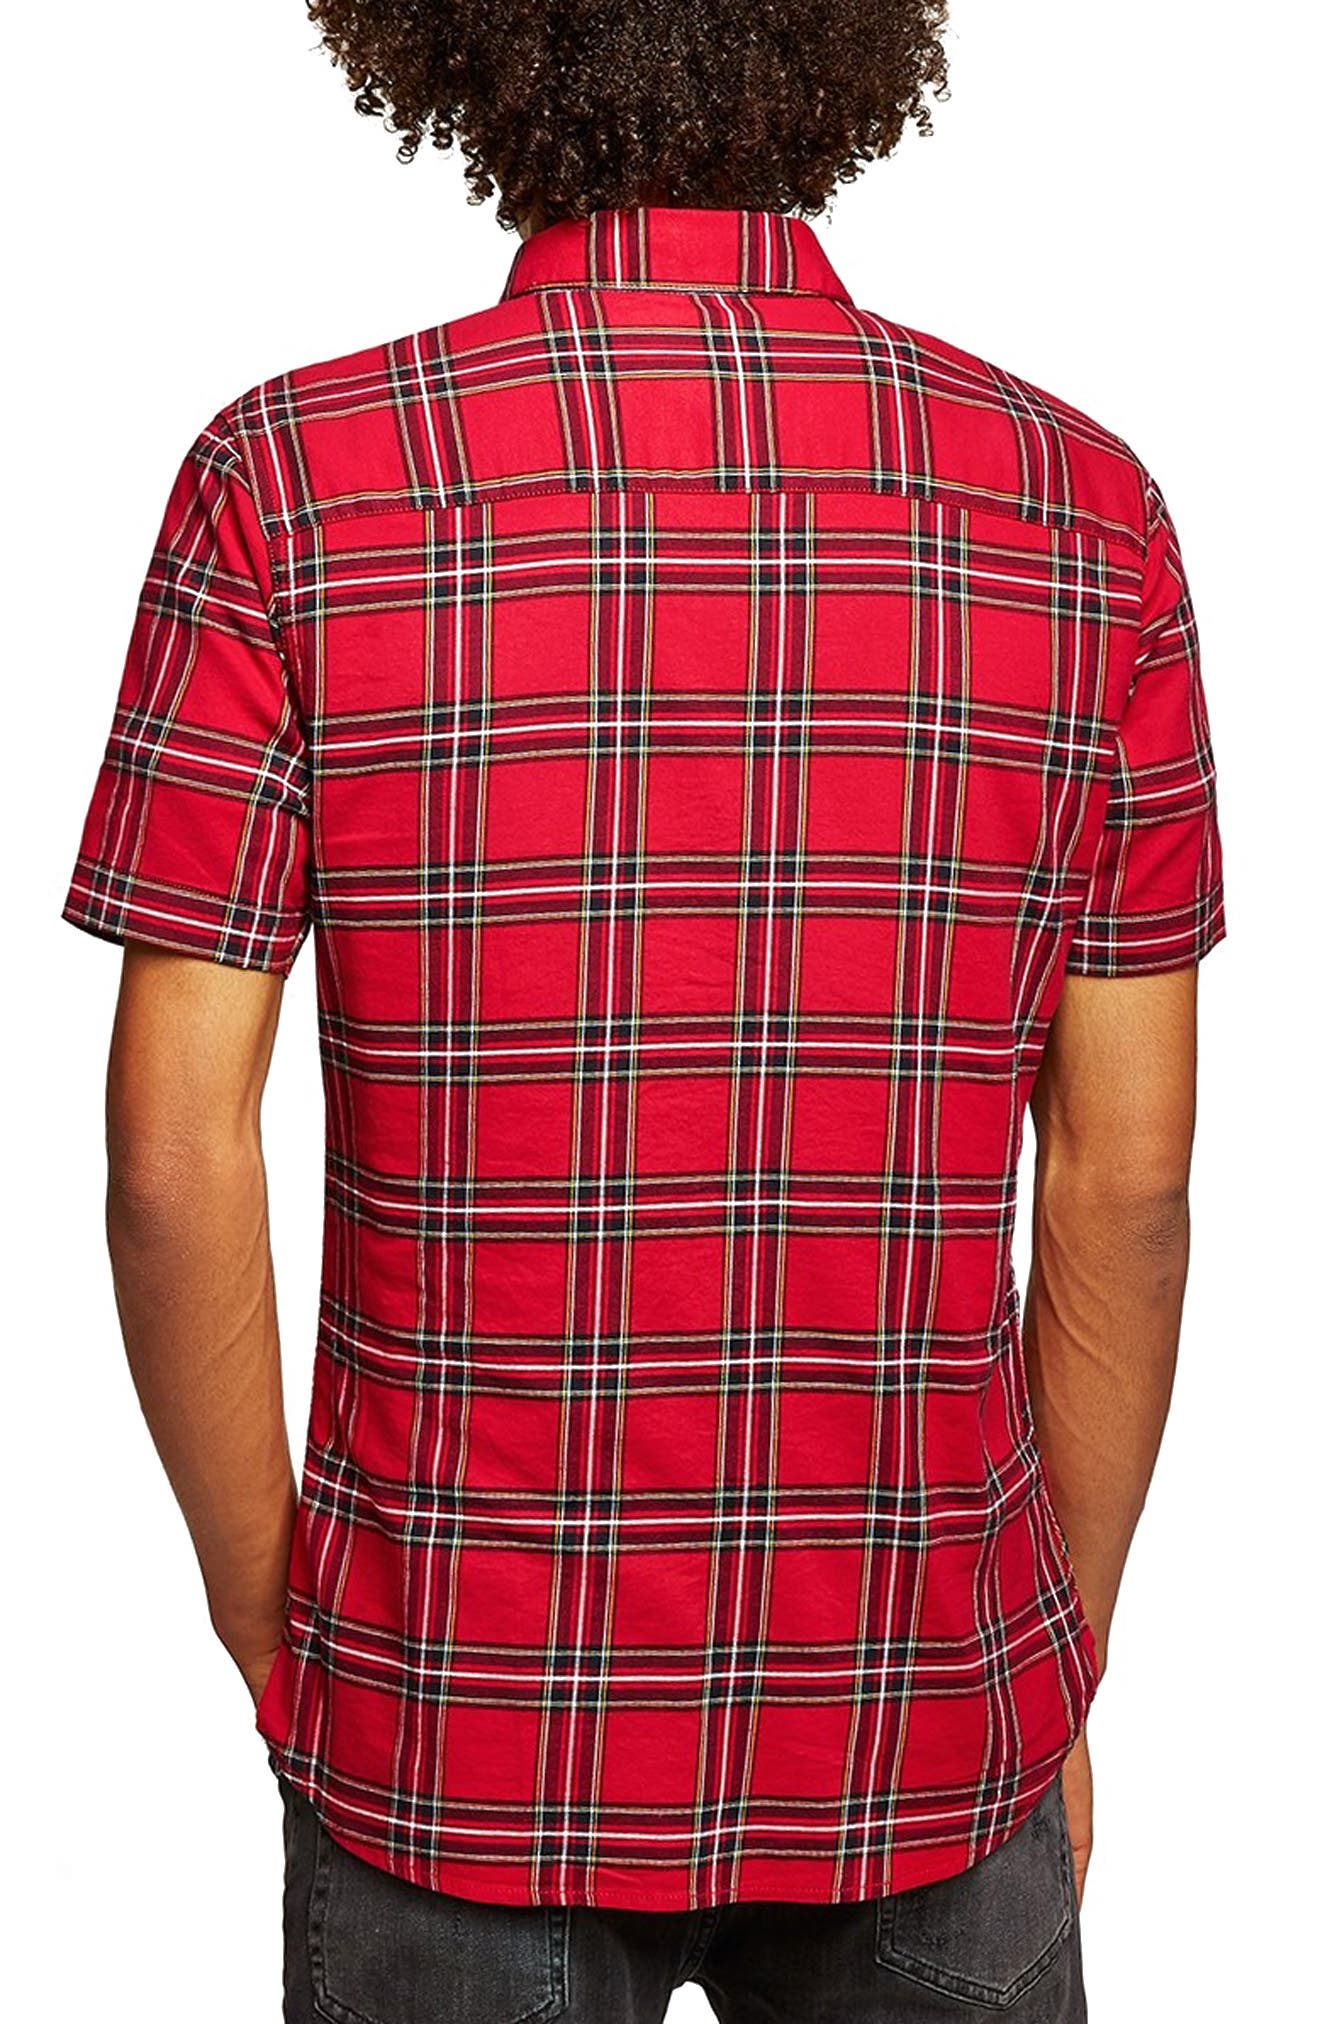 Muscle Fit Tartan Check Shirt,                             Alternate thumbnail 2, color,                             600